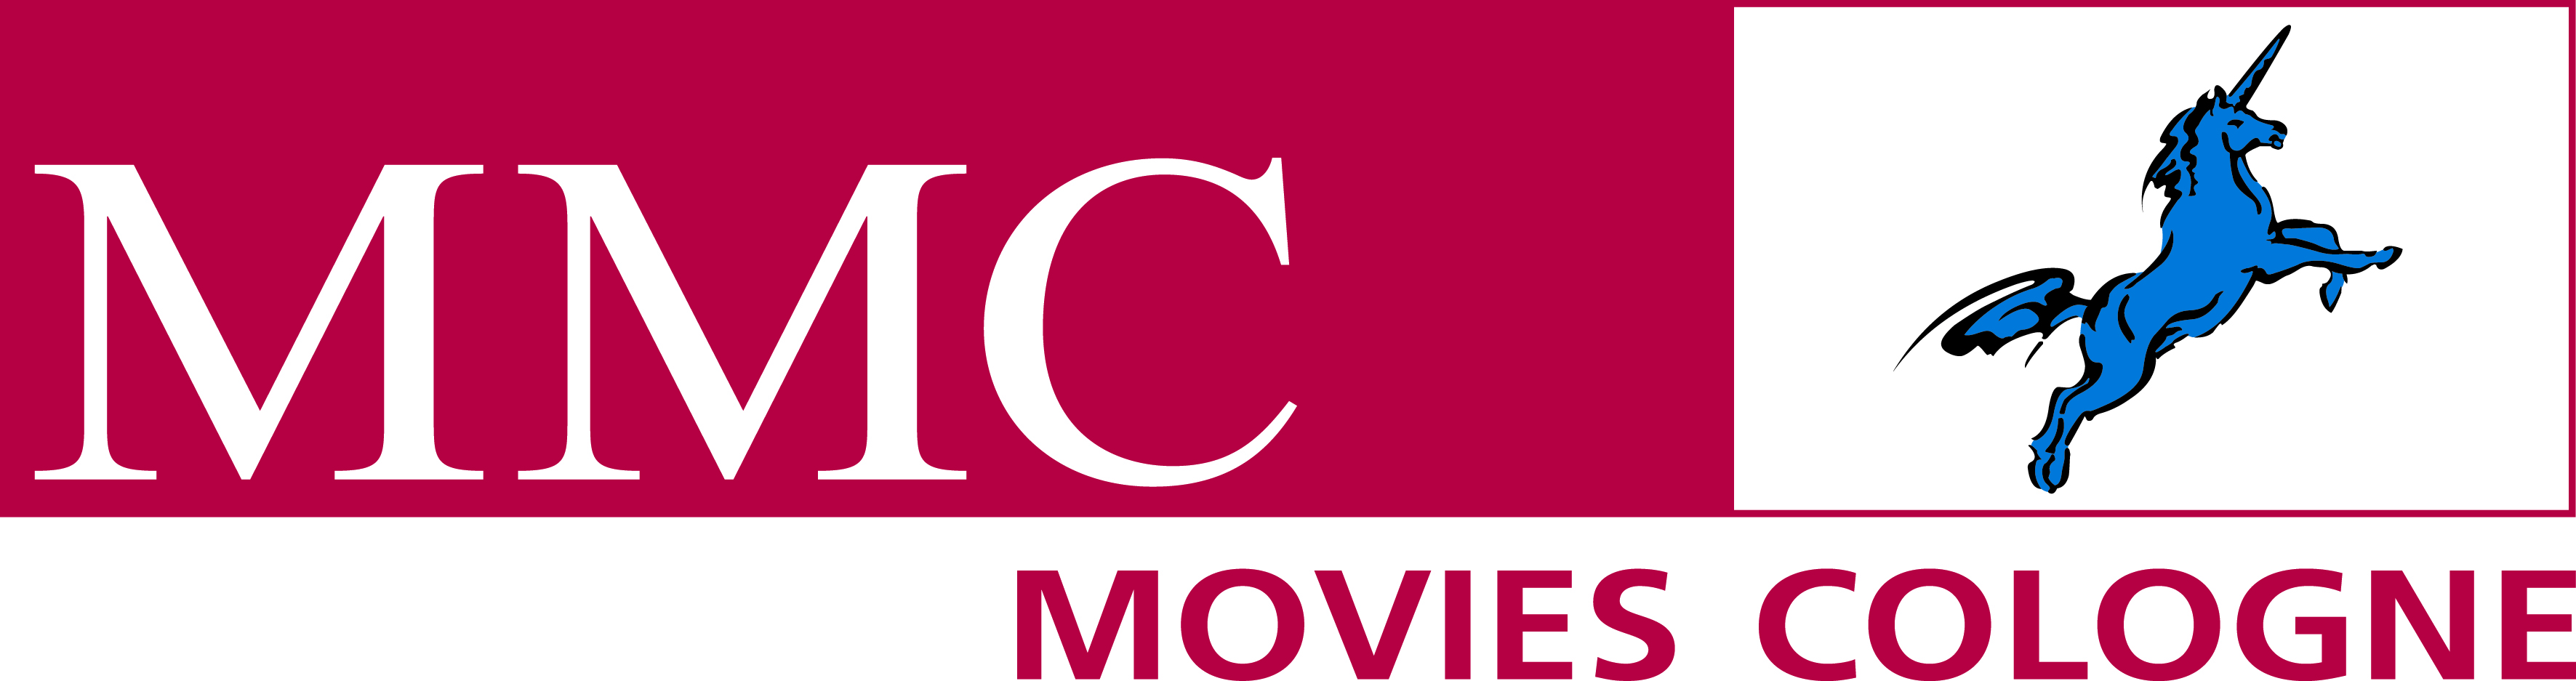 MMC Movies Cologne